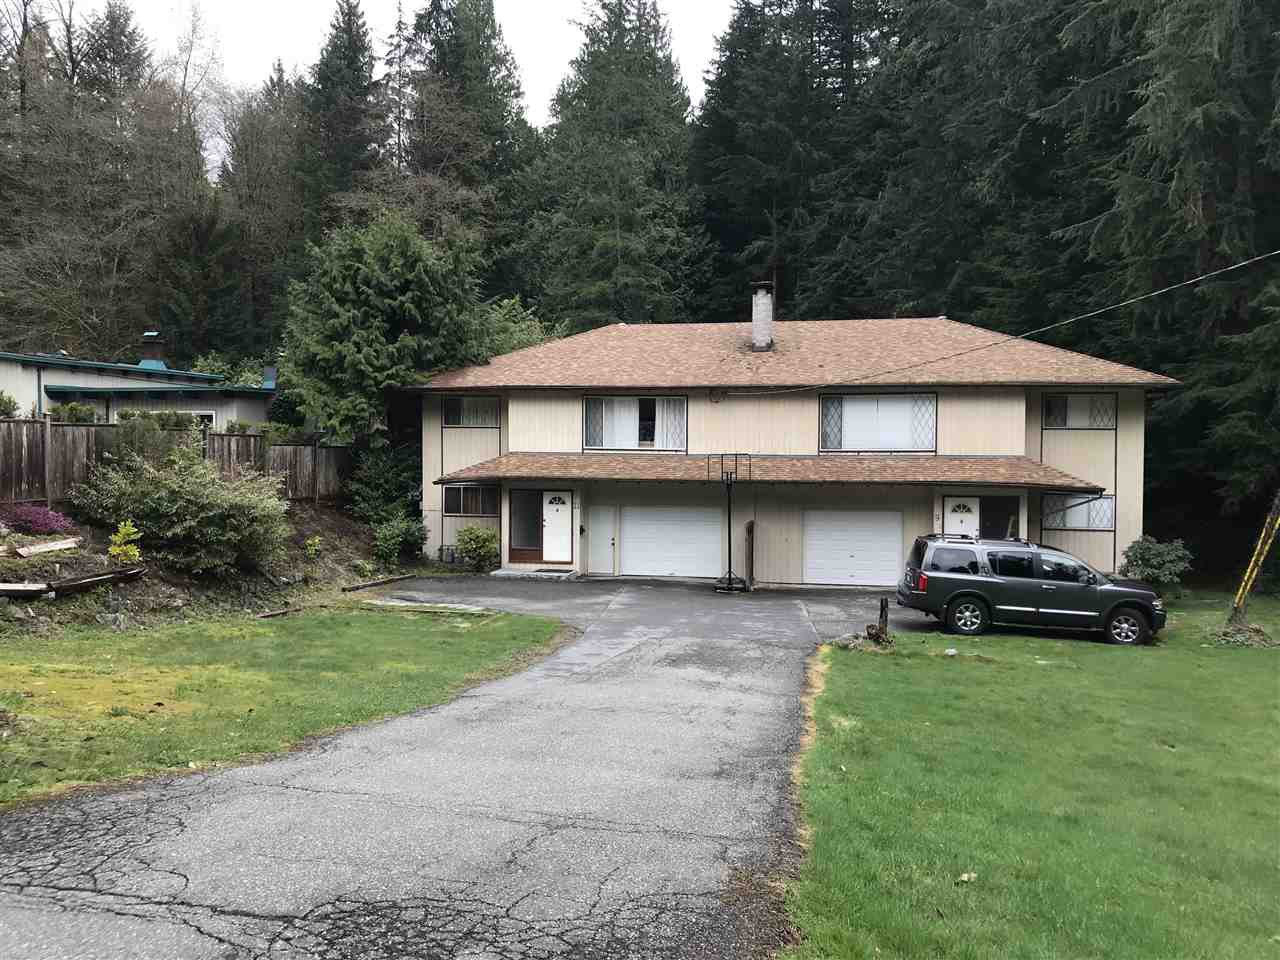 Main Photo: 9 GLENMORE Drive in West Vancouver: Glenmore House for sale : MLS®# R2402546